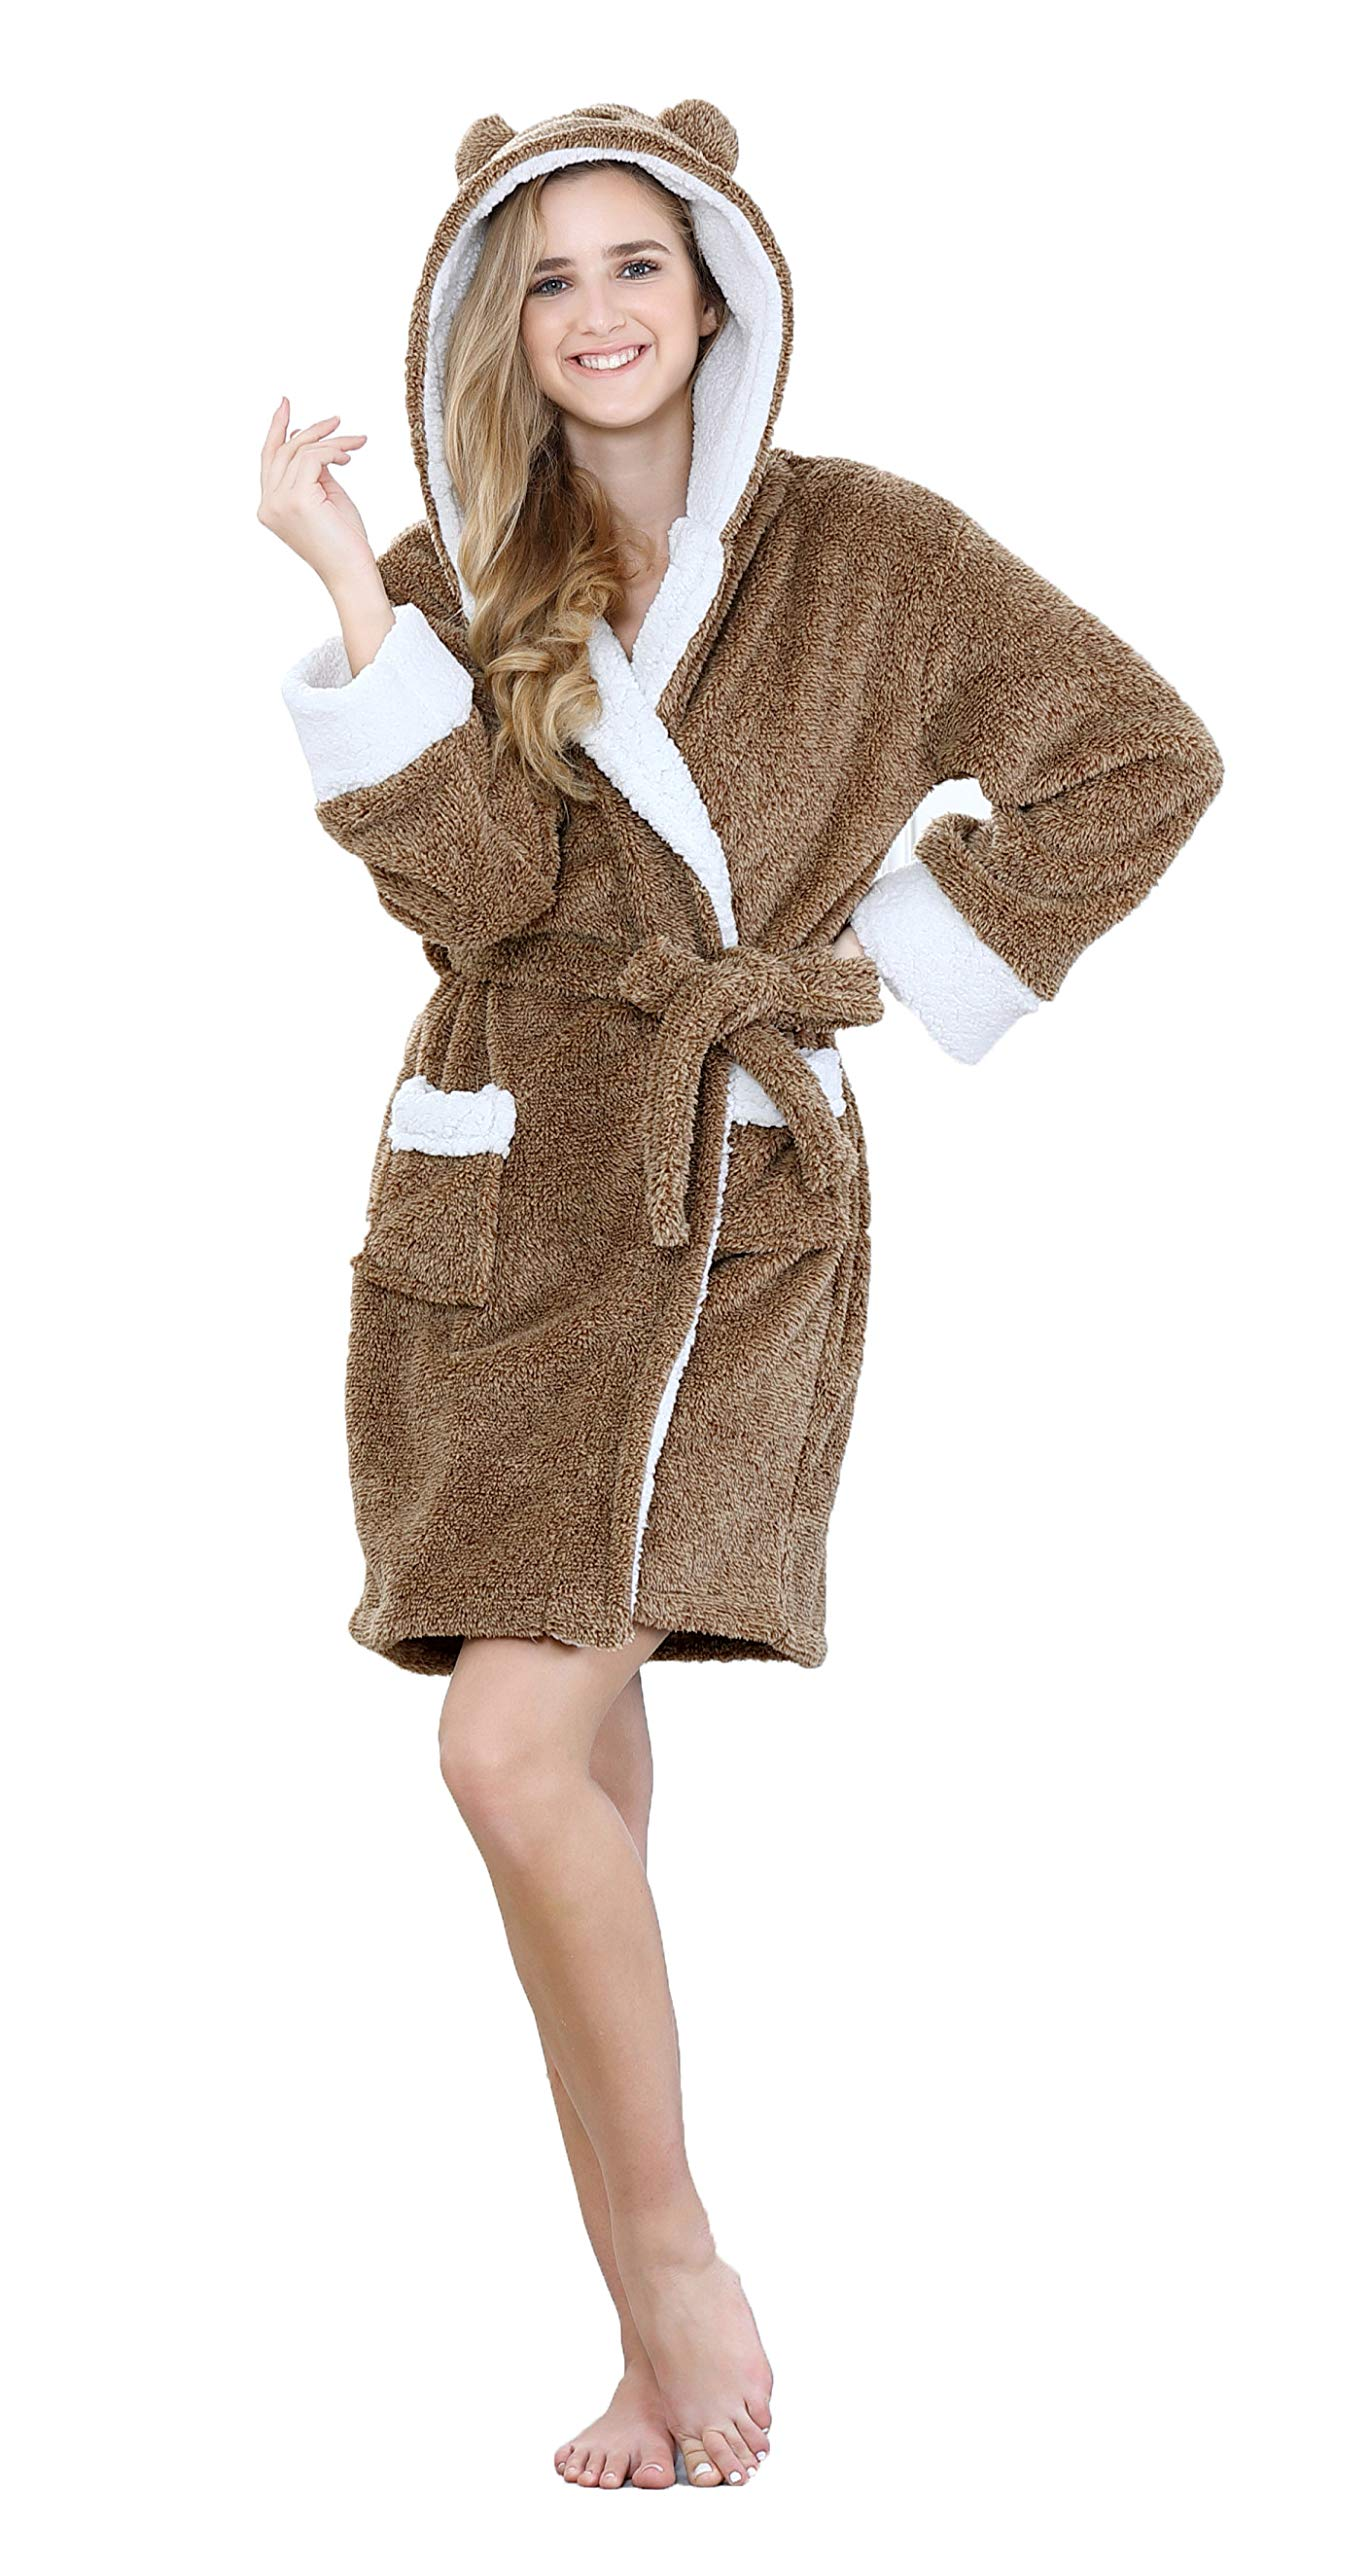 TIMSOPHIA Plush Robes for Womens Bathrobes with Hood Soft Animal Robes Cozy Warm Koala Gifts